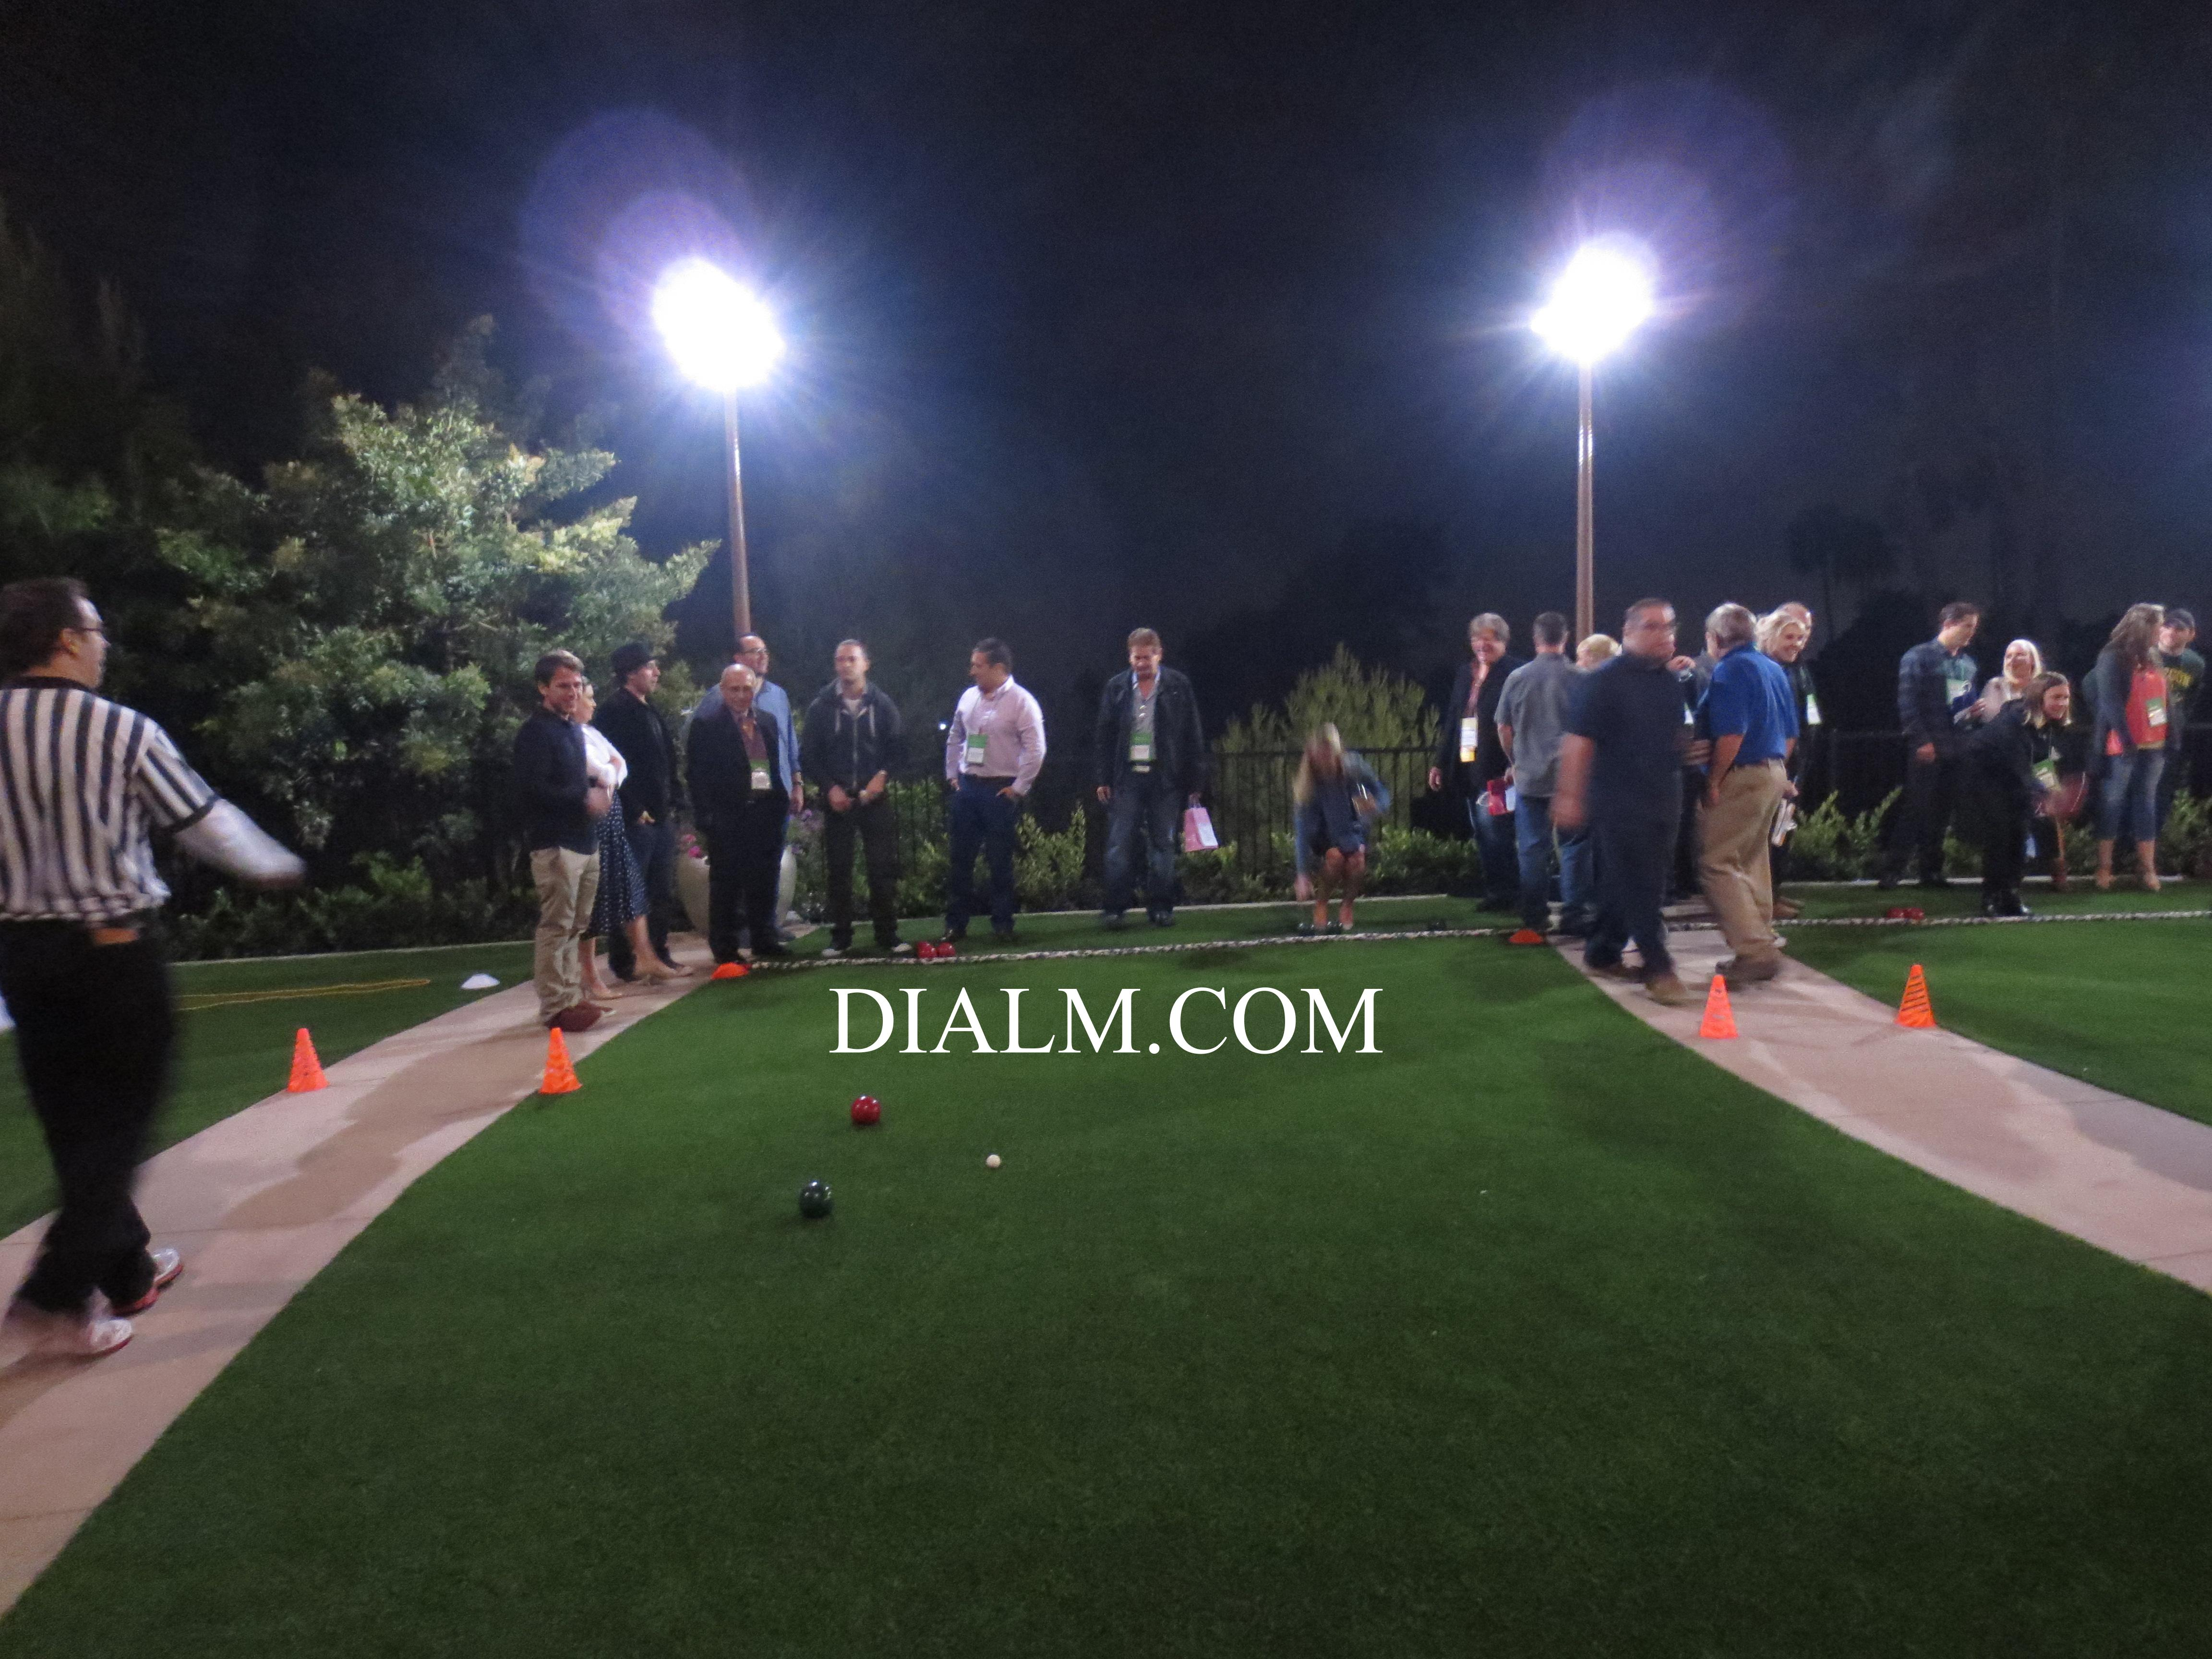 Bocce Ball Team Building Event #DIALM